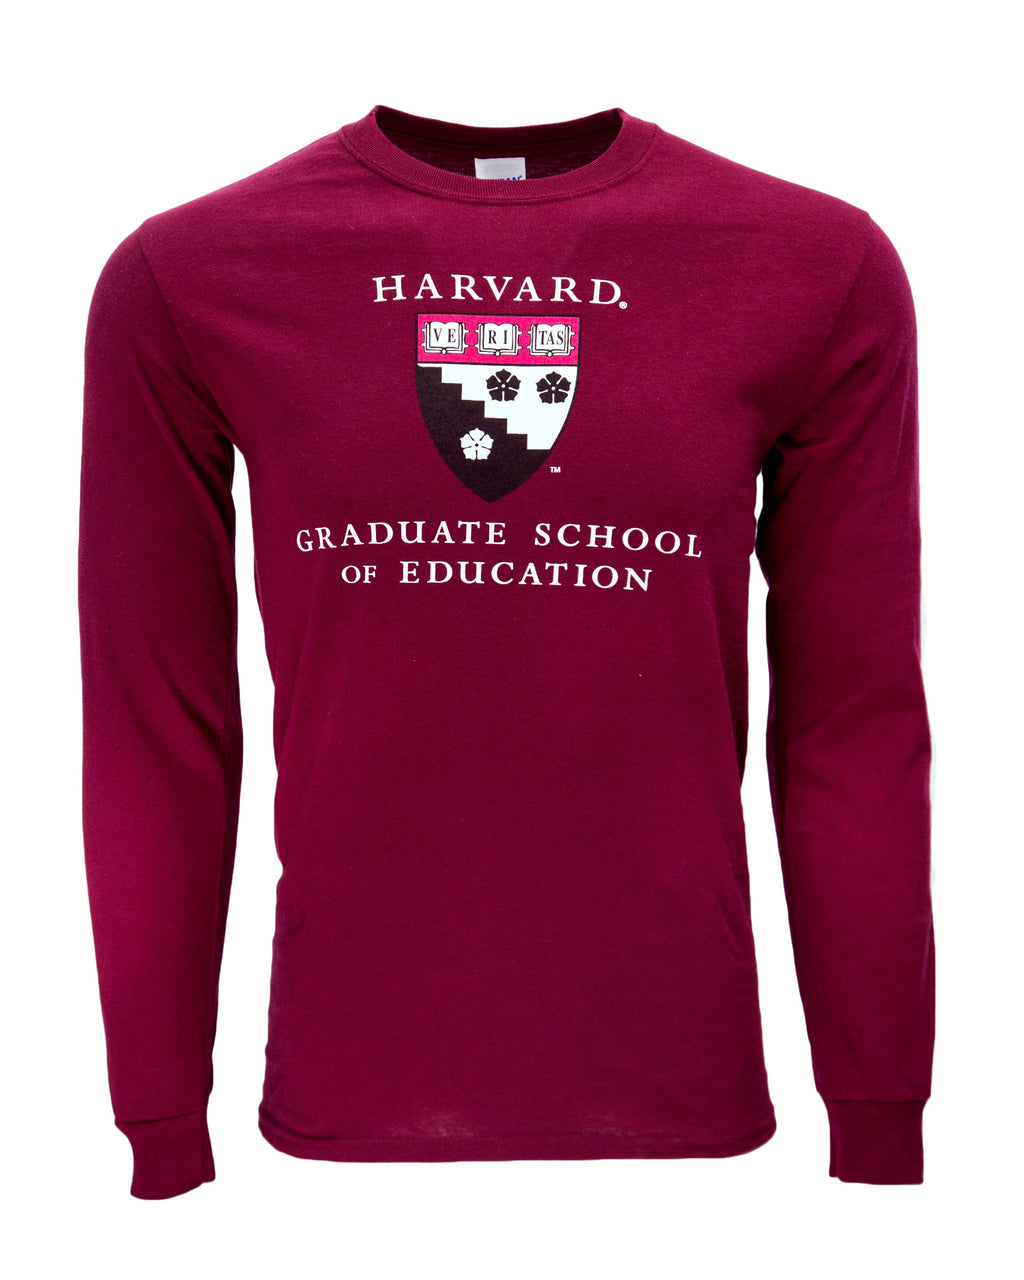 7fbcdcf2d Official Harvard Graduate School Clothing & Accessories – The ...